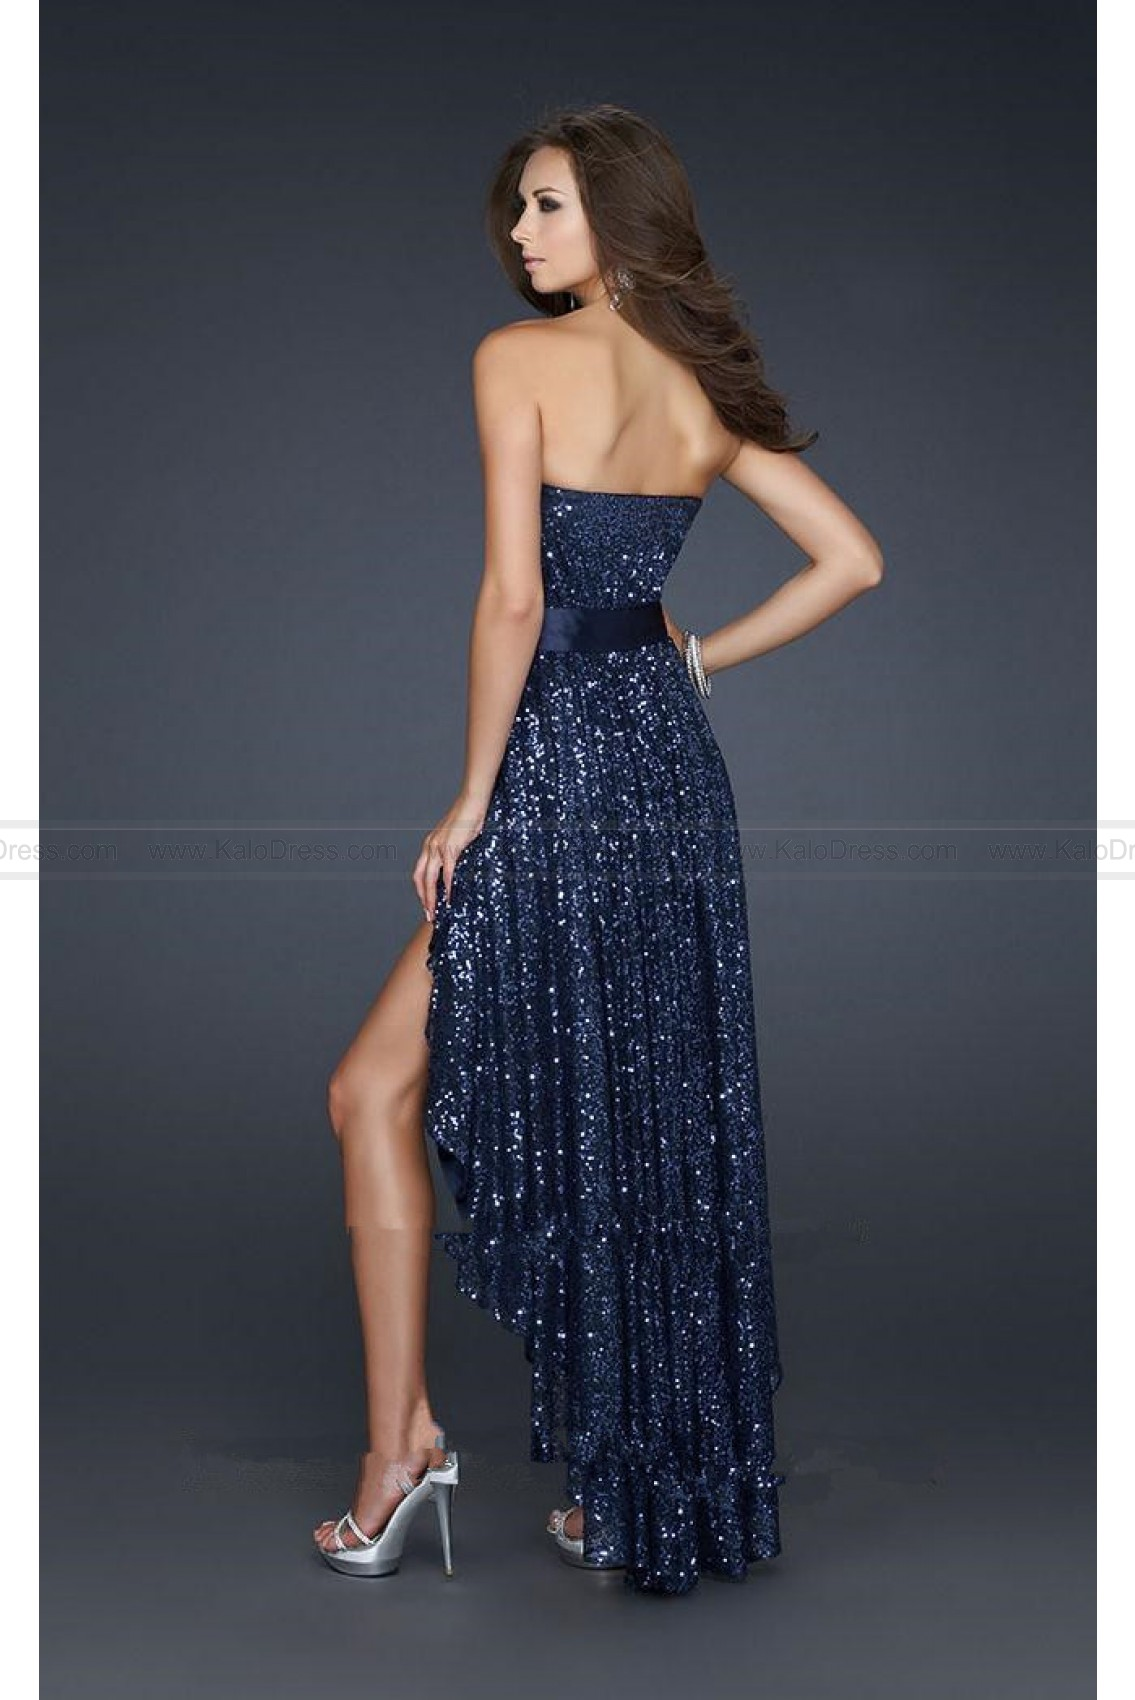 La Femme 17334 - Prom Dresses 2014 - Special Occasion